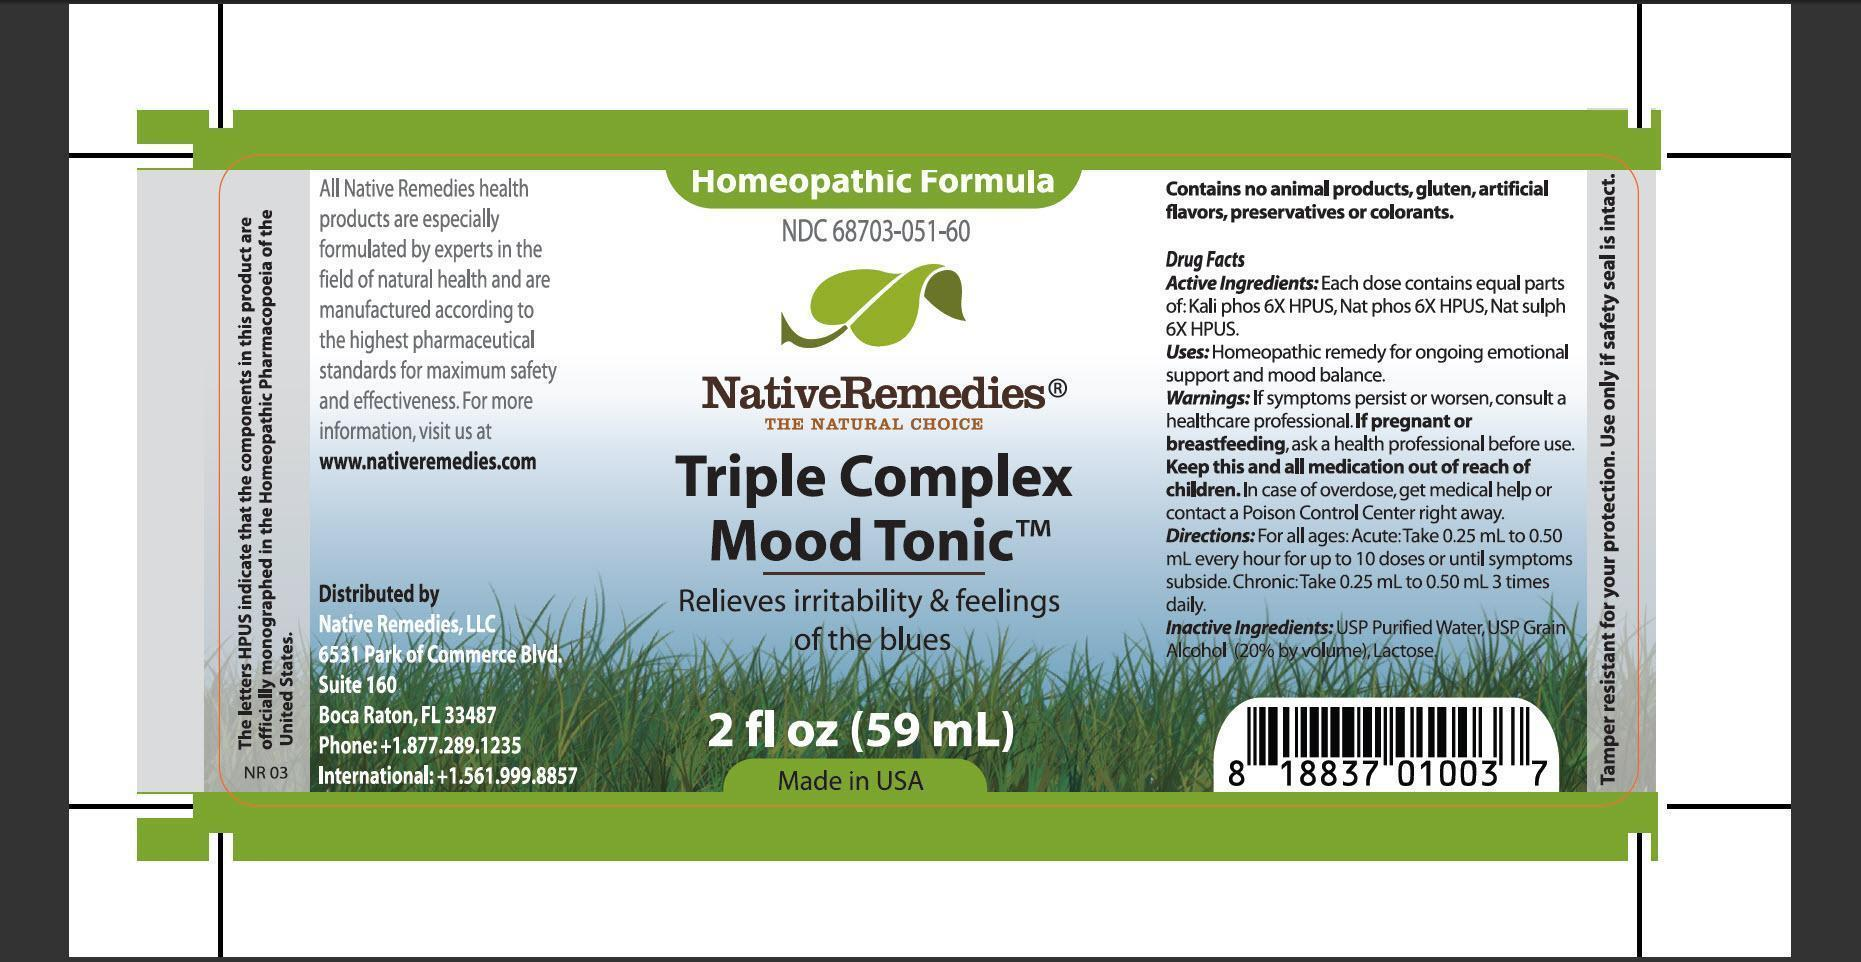 Triple Complex Mood Tonic (Kali Phos, Nat Phos, Nat Sulph) Tincture [Native Remedies, Llc]